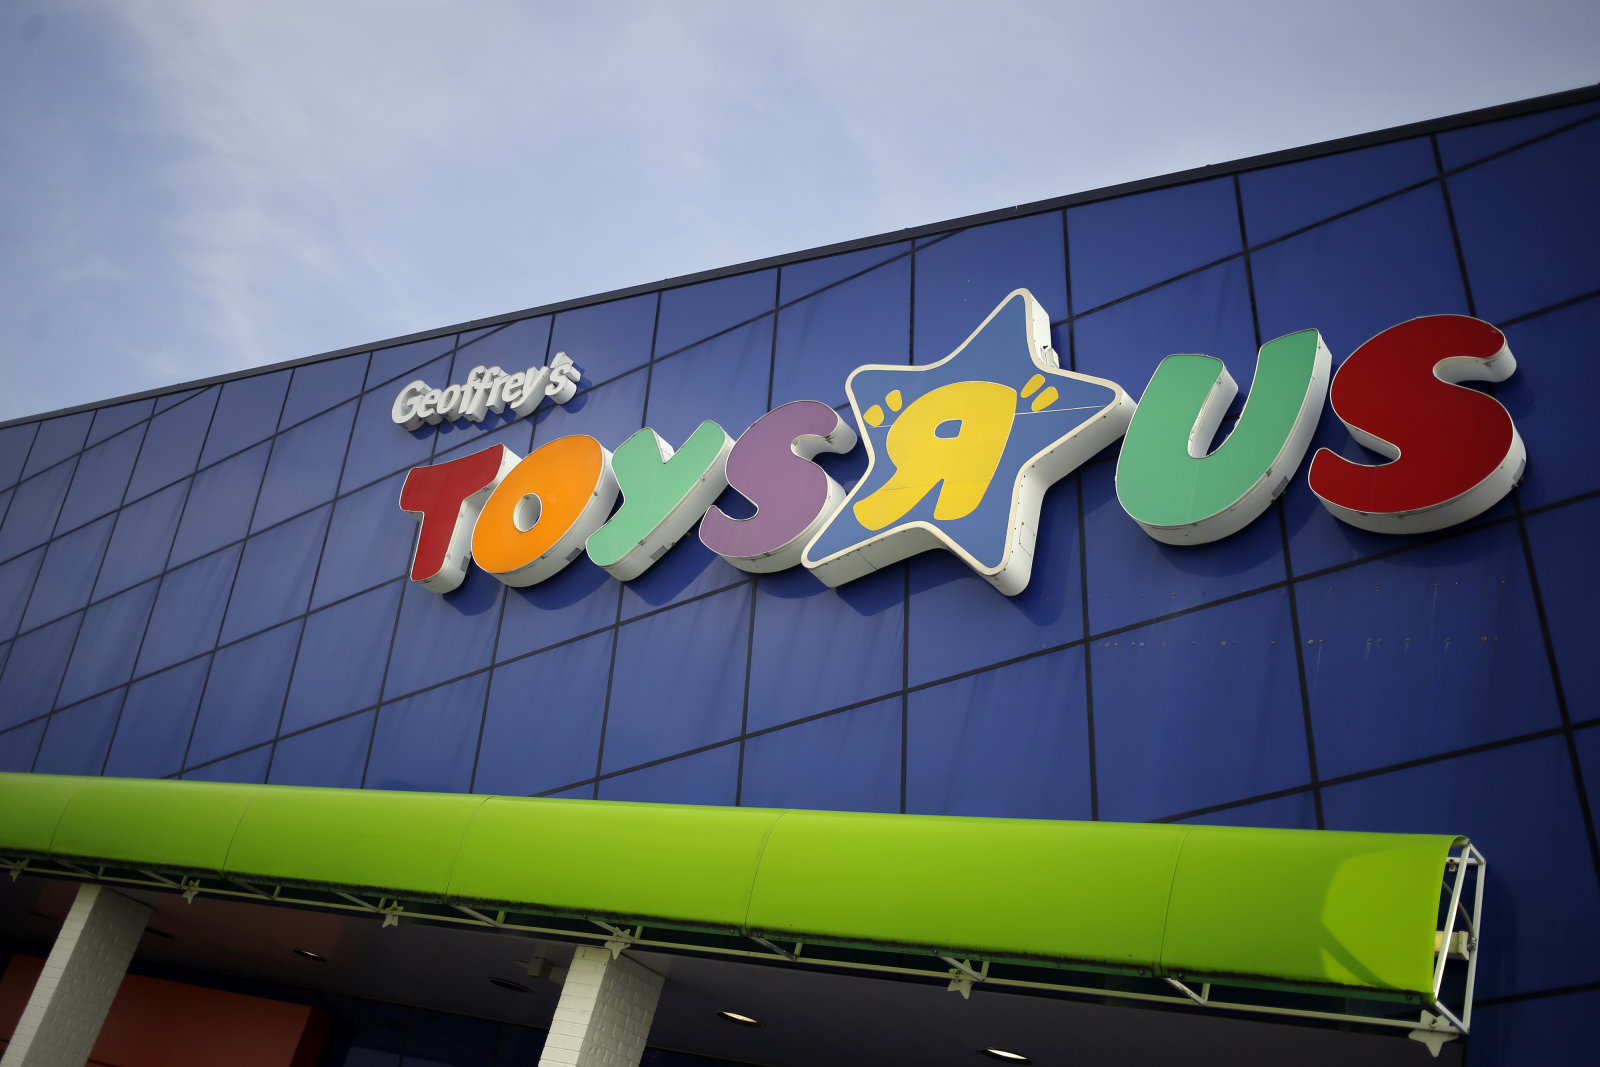 Signage is displayed outside a Toys R Us Inc. retail store in Louisville, Kentucky, U.S., on Monday, Sept. 18, 2017. Toys R Us Inc., which has struggled to lift its fortunes since a buyout loaded the retailer with debt more than a decade ago, is preparing a bankruptcy filing as soon as today, according to people familiar with the situation. Photographer: Luke Sharrett/Bloomberg via Getty Images